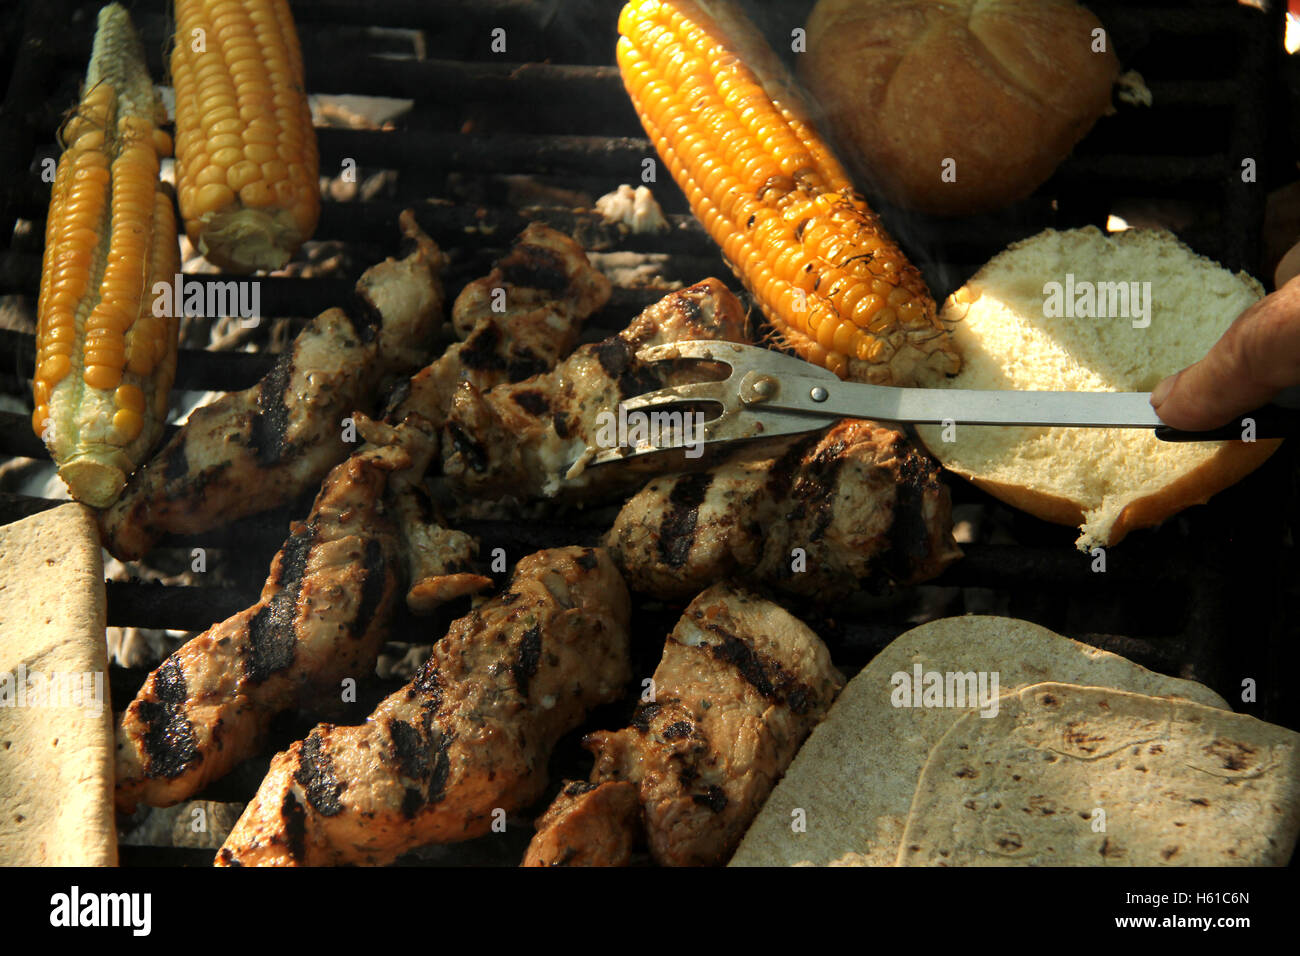 Grilling meat, bread, and corn at outdoors camping - Stock Image